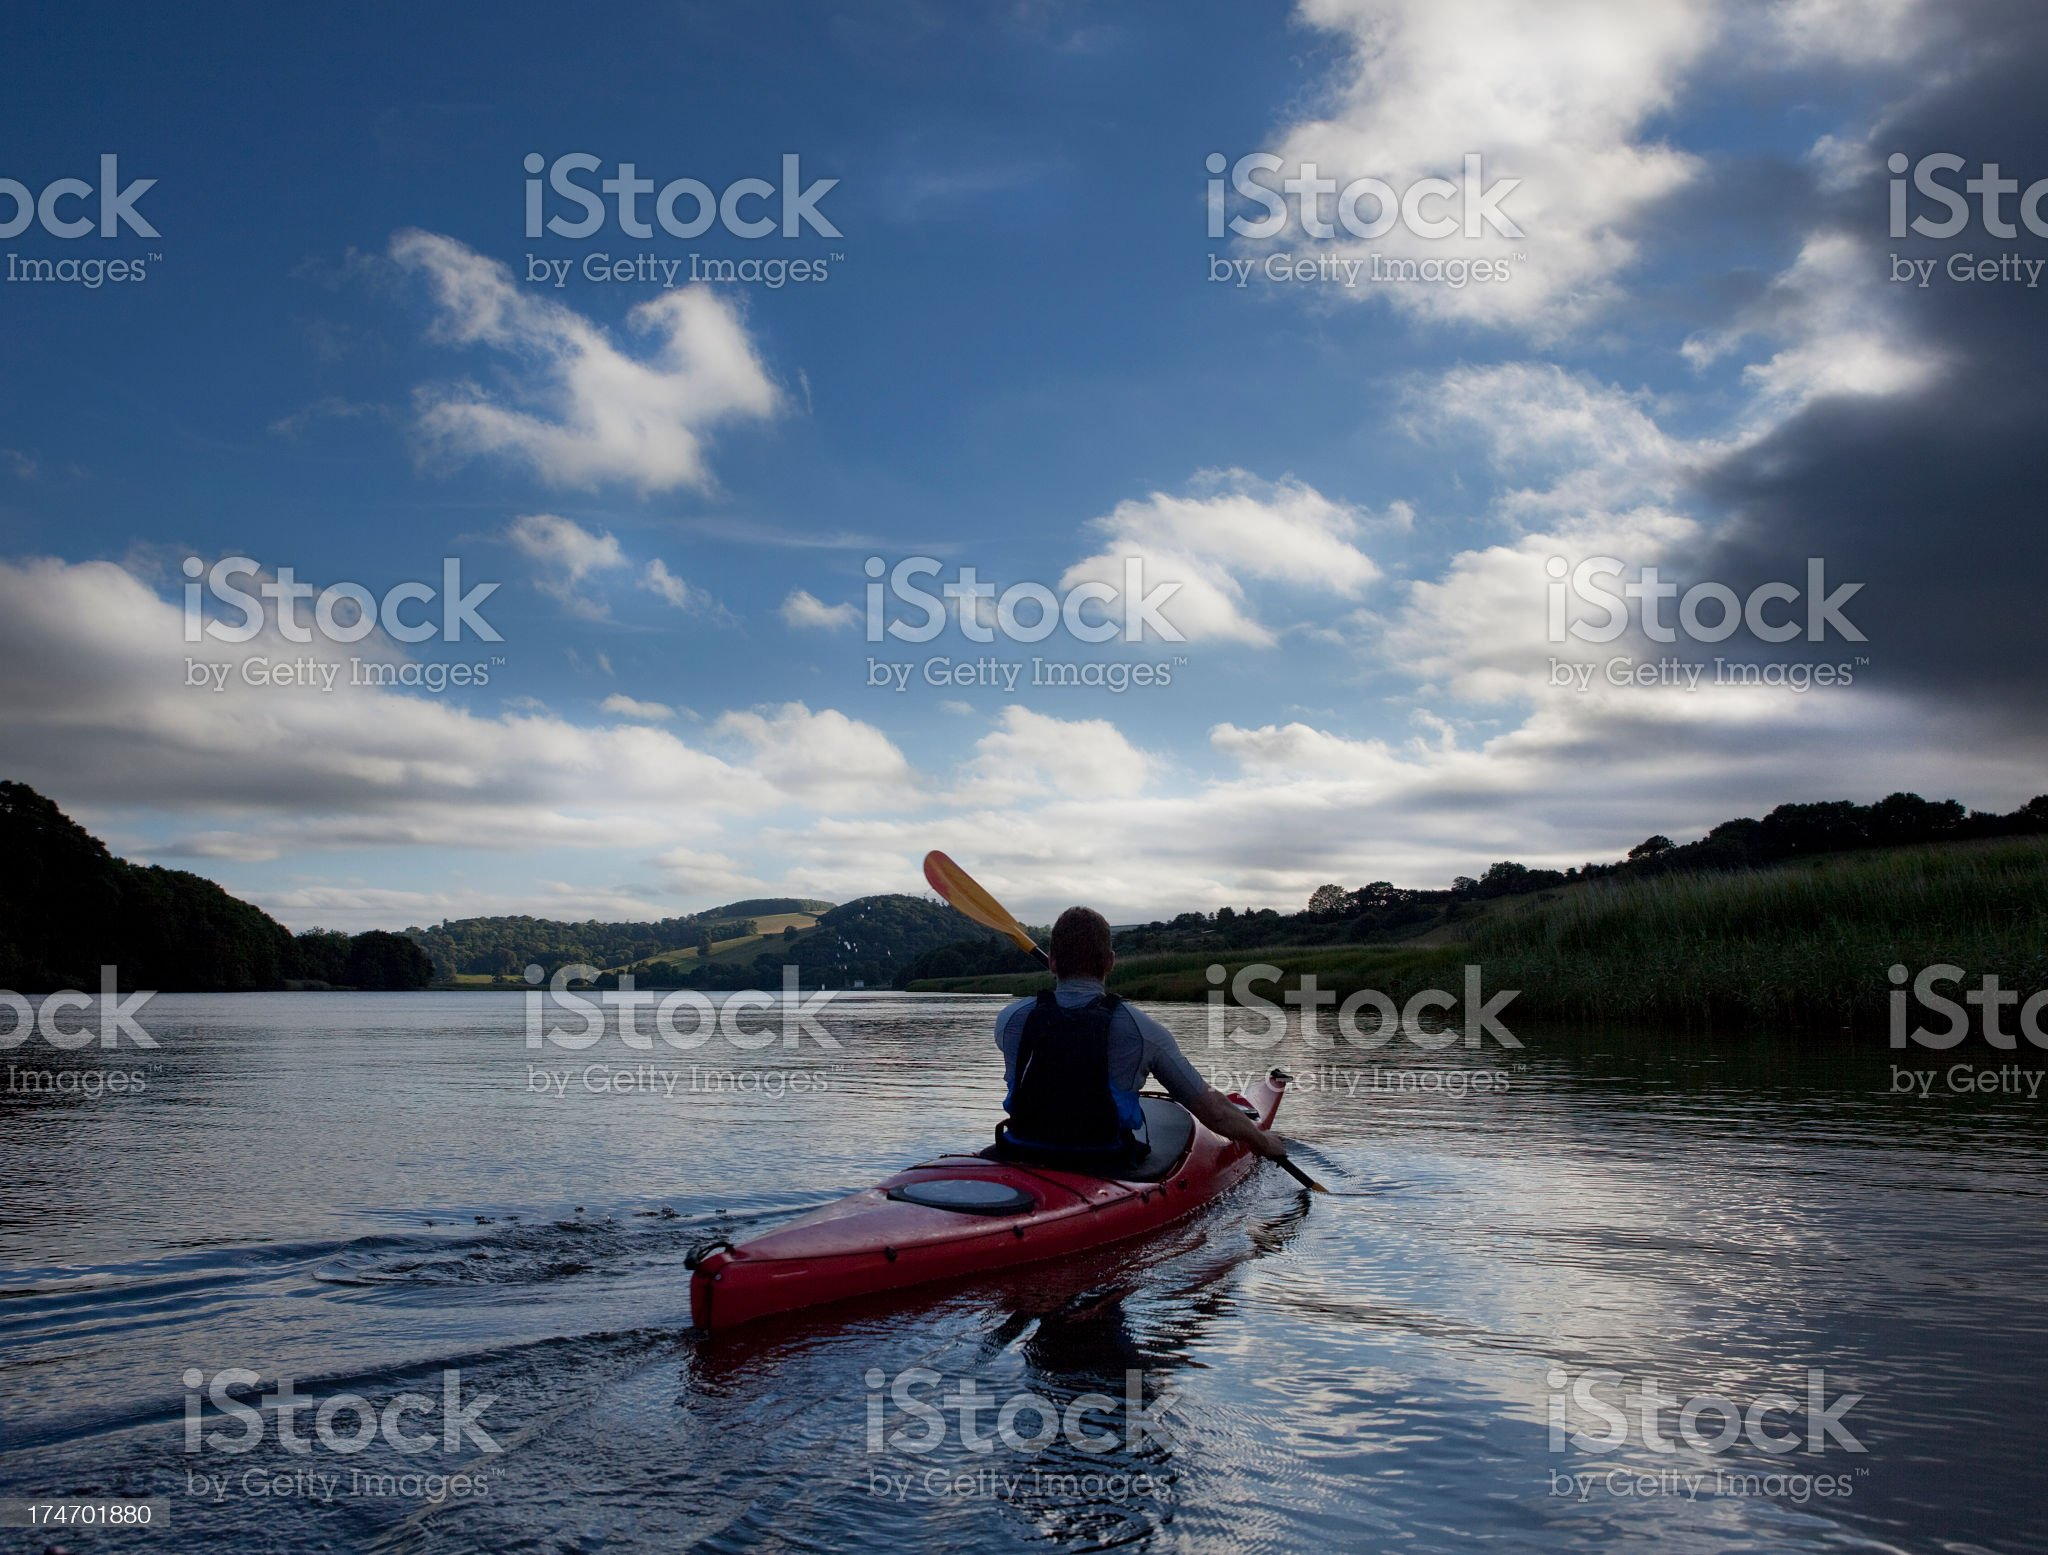 Man in red kayak paddling on a calm lake on a sunny day royalty-free stock photo